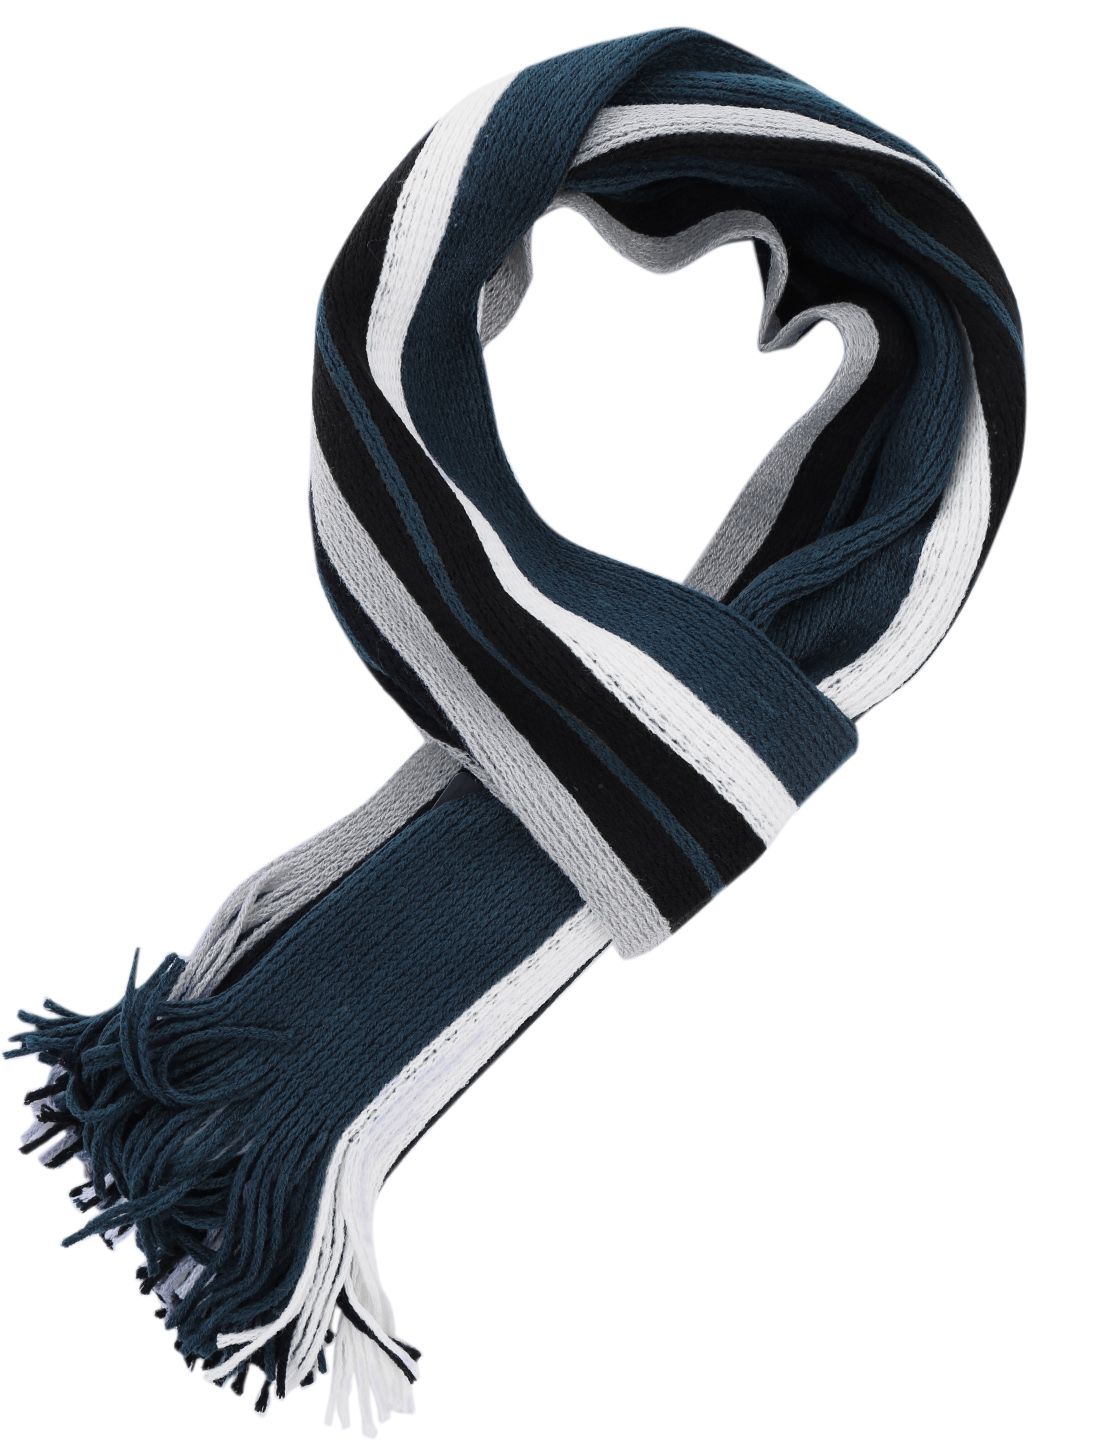 Men Women Fashion Design Tassels Hem Navy Blue White Knit Scarf